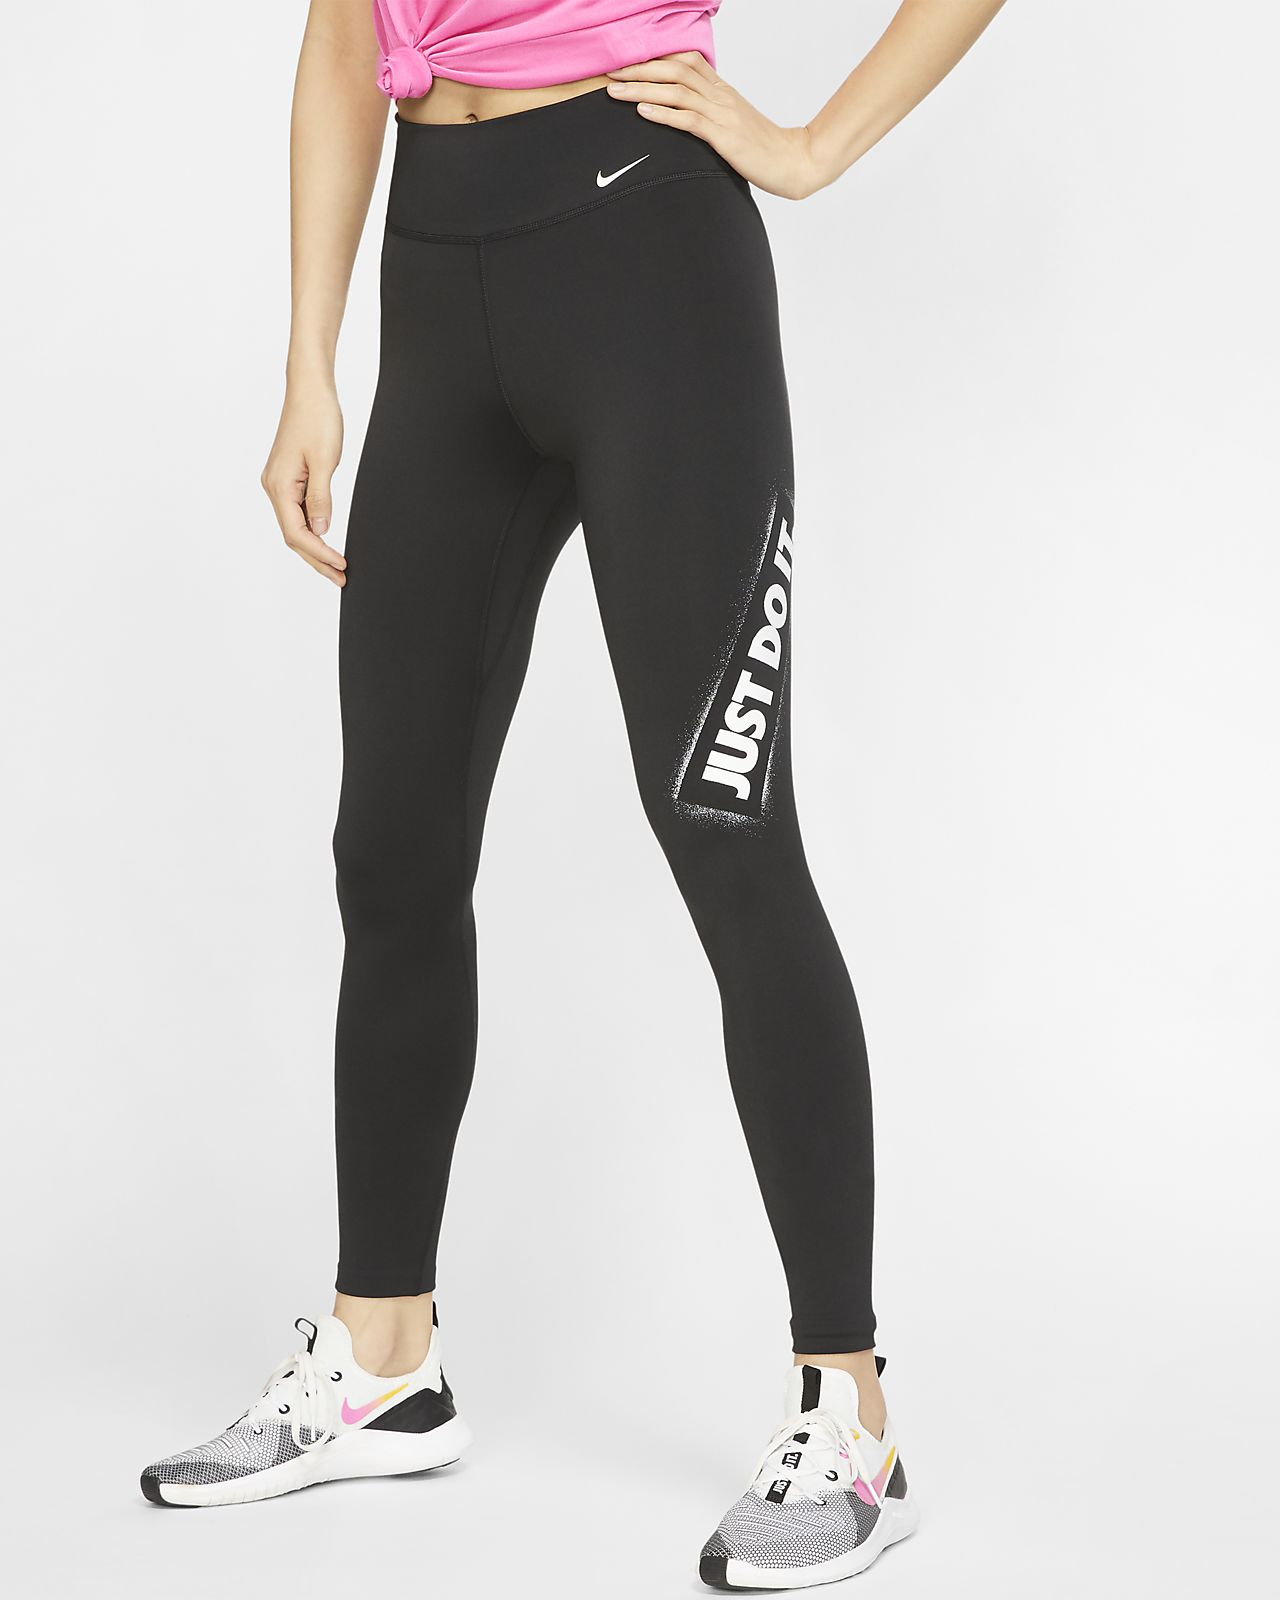 Nike One JDI-Tights für Damen